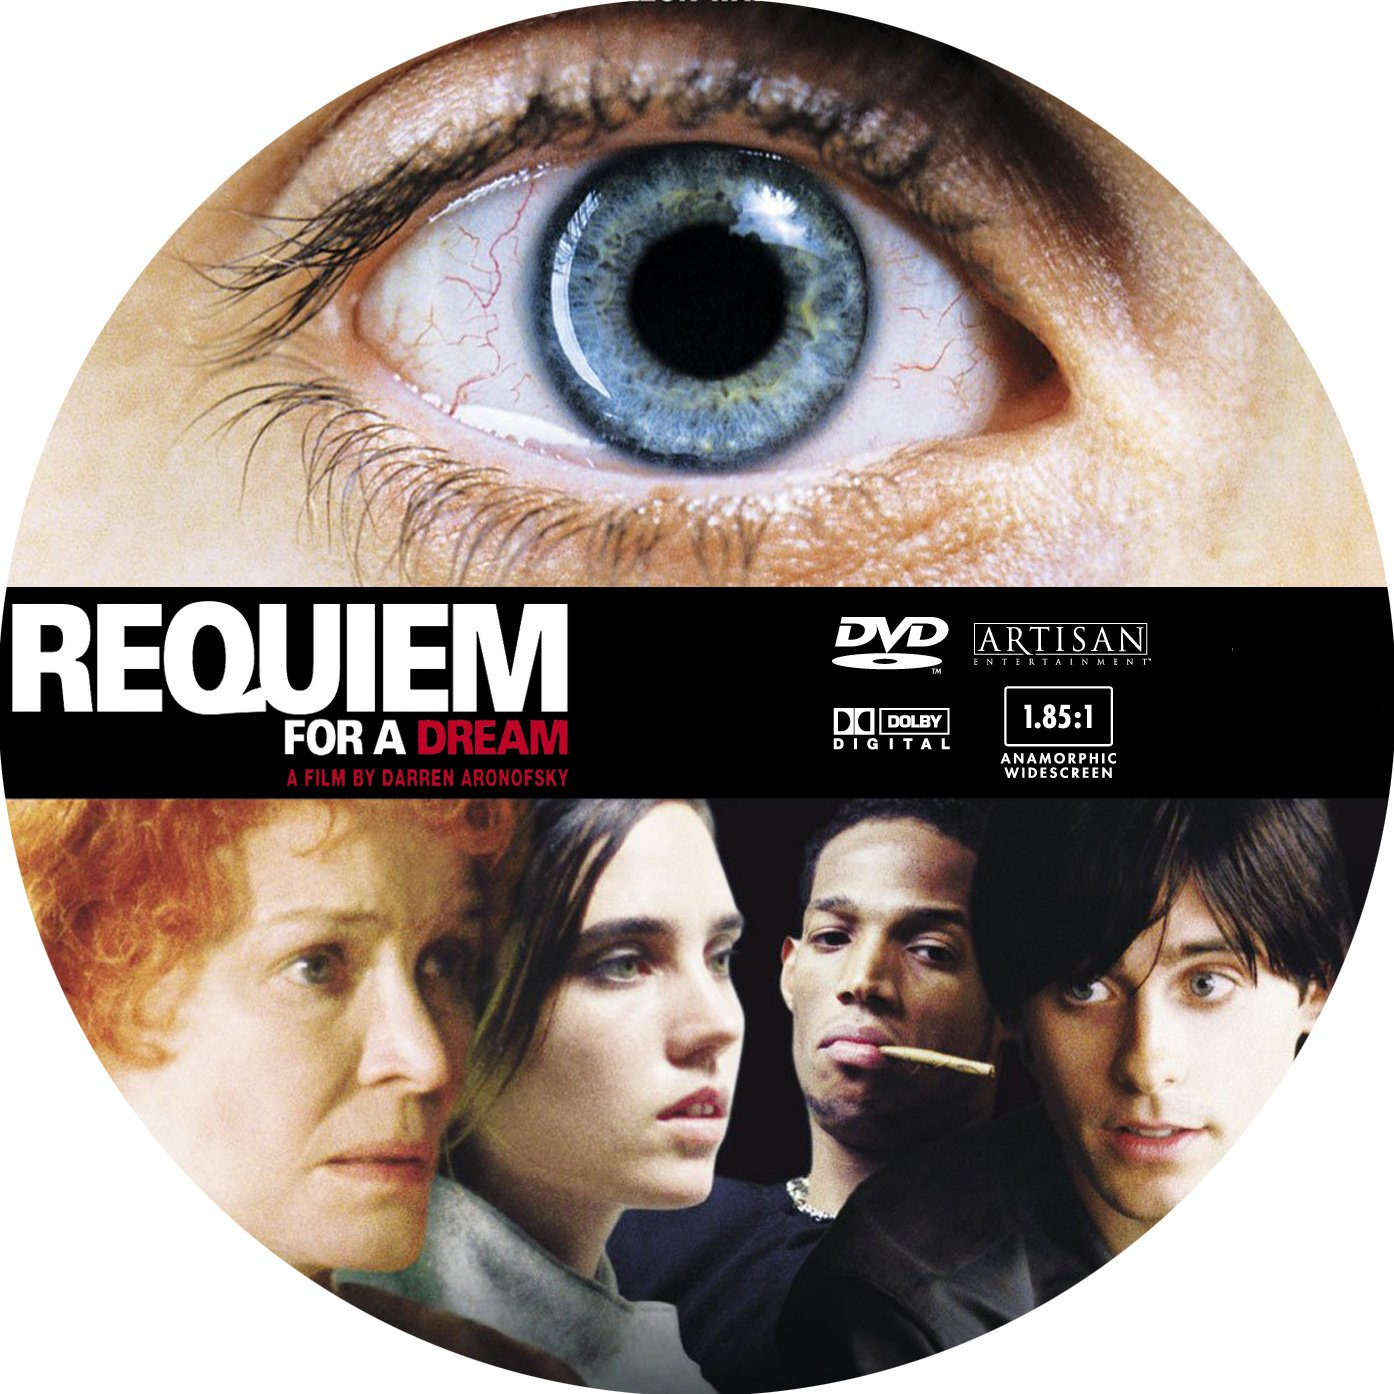 addiction and requiem for a dream Just recently watched requiem for a dream and was interested in what other bluelighters said about it so i looked in the other drugs archive people talked about requiem for a dream being about heroin users im confused.